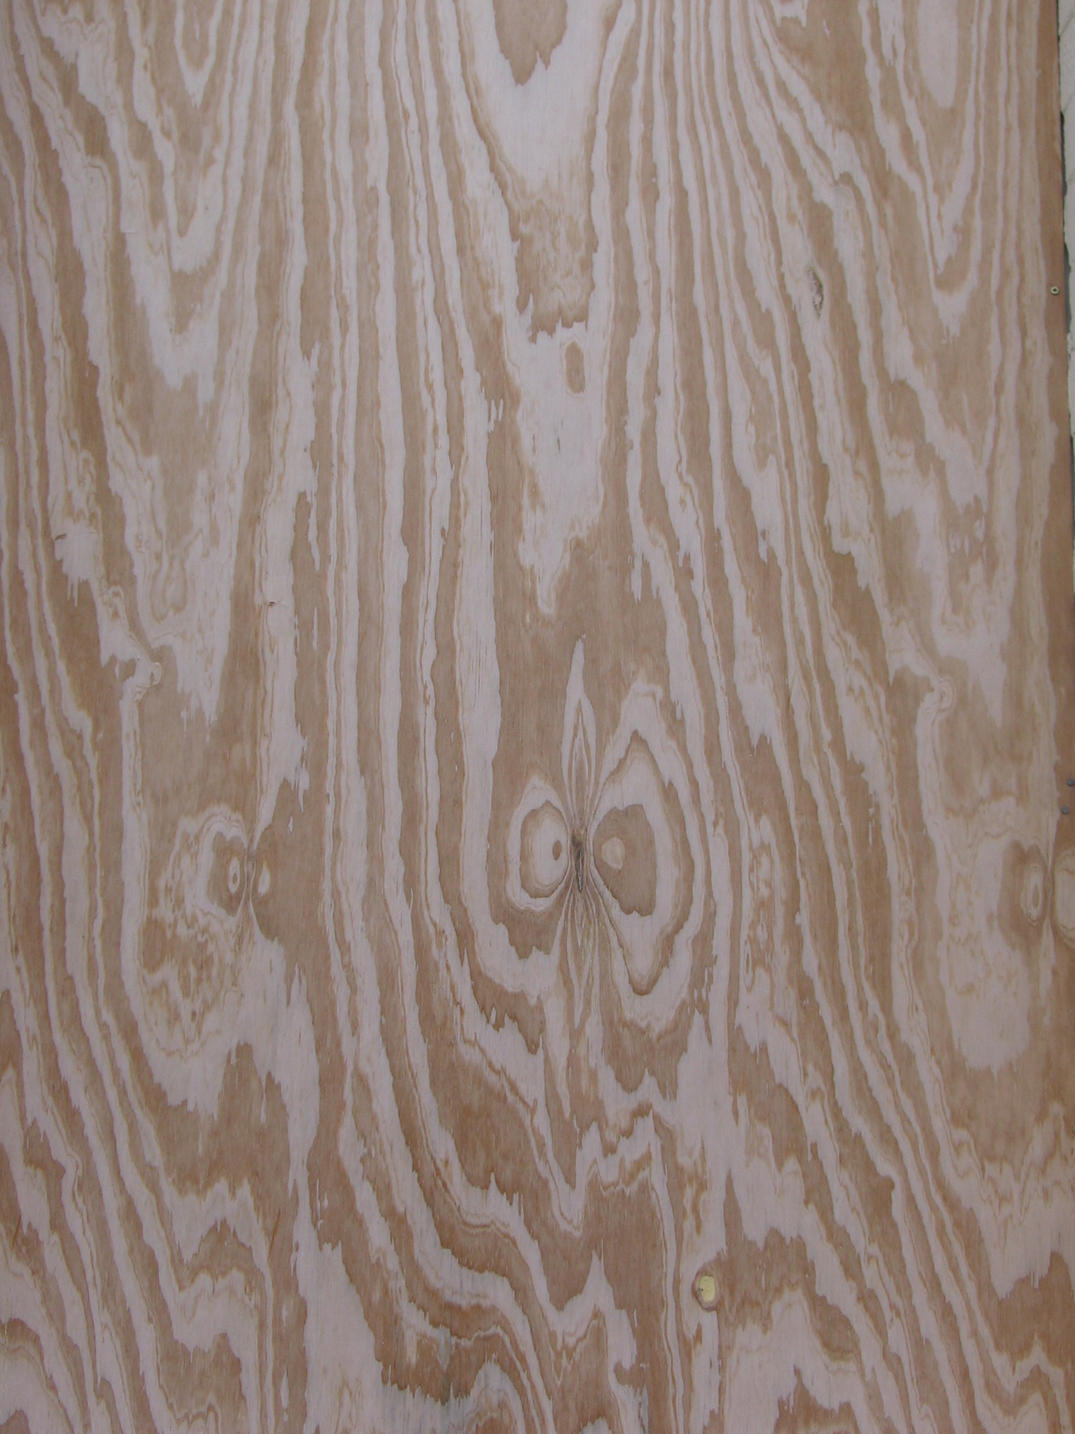 wall 16 - woodgrain by cheesyflips-stock